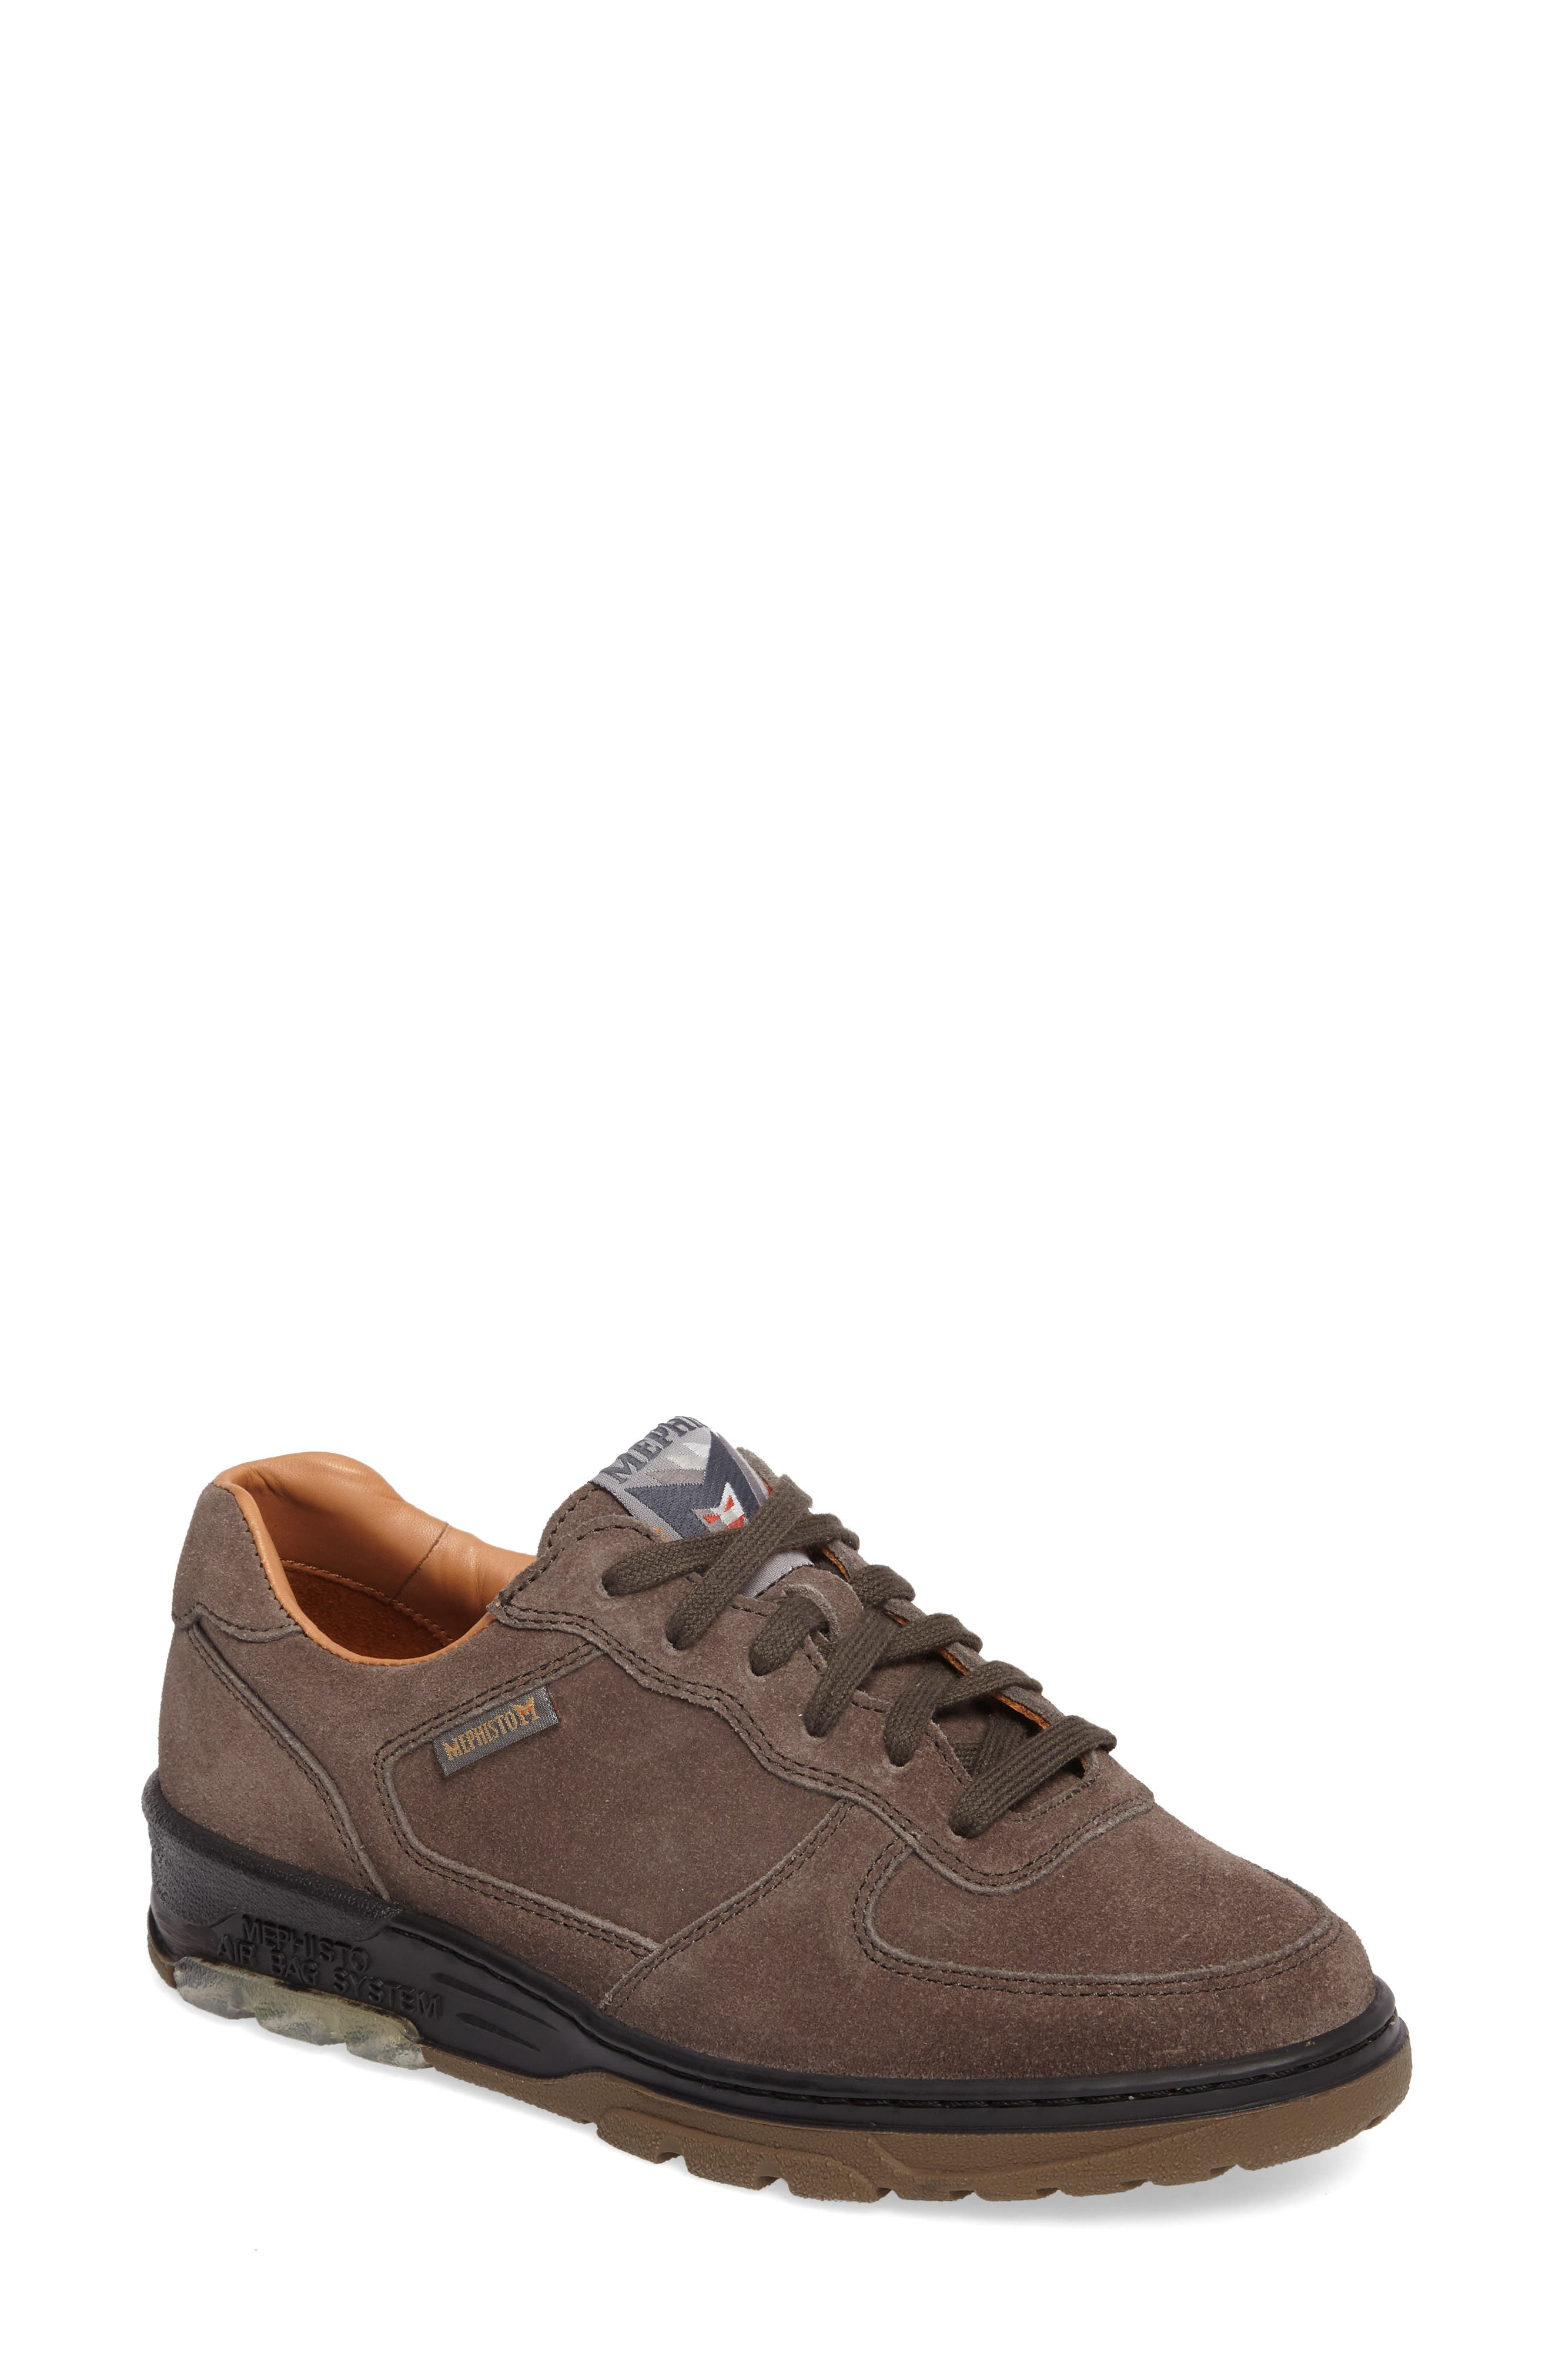 Alternate Image 1 Selected - Mephisto Nykita Sneaker (Women)